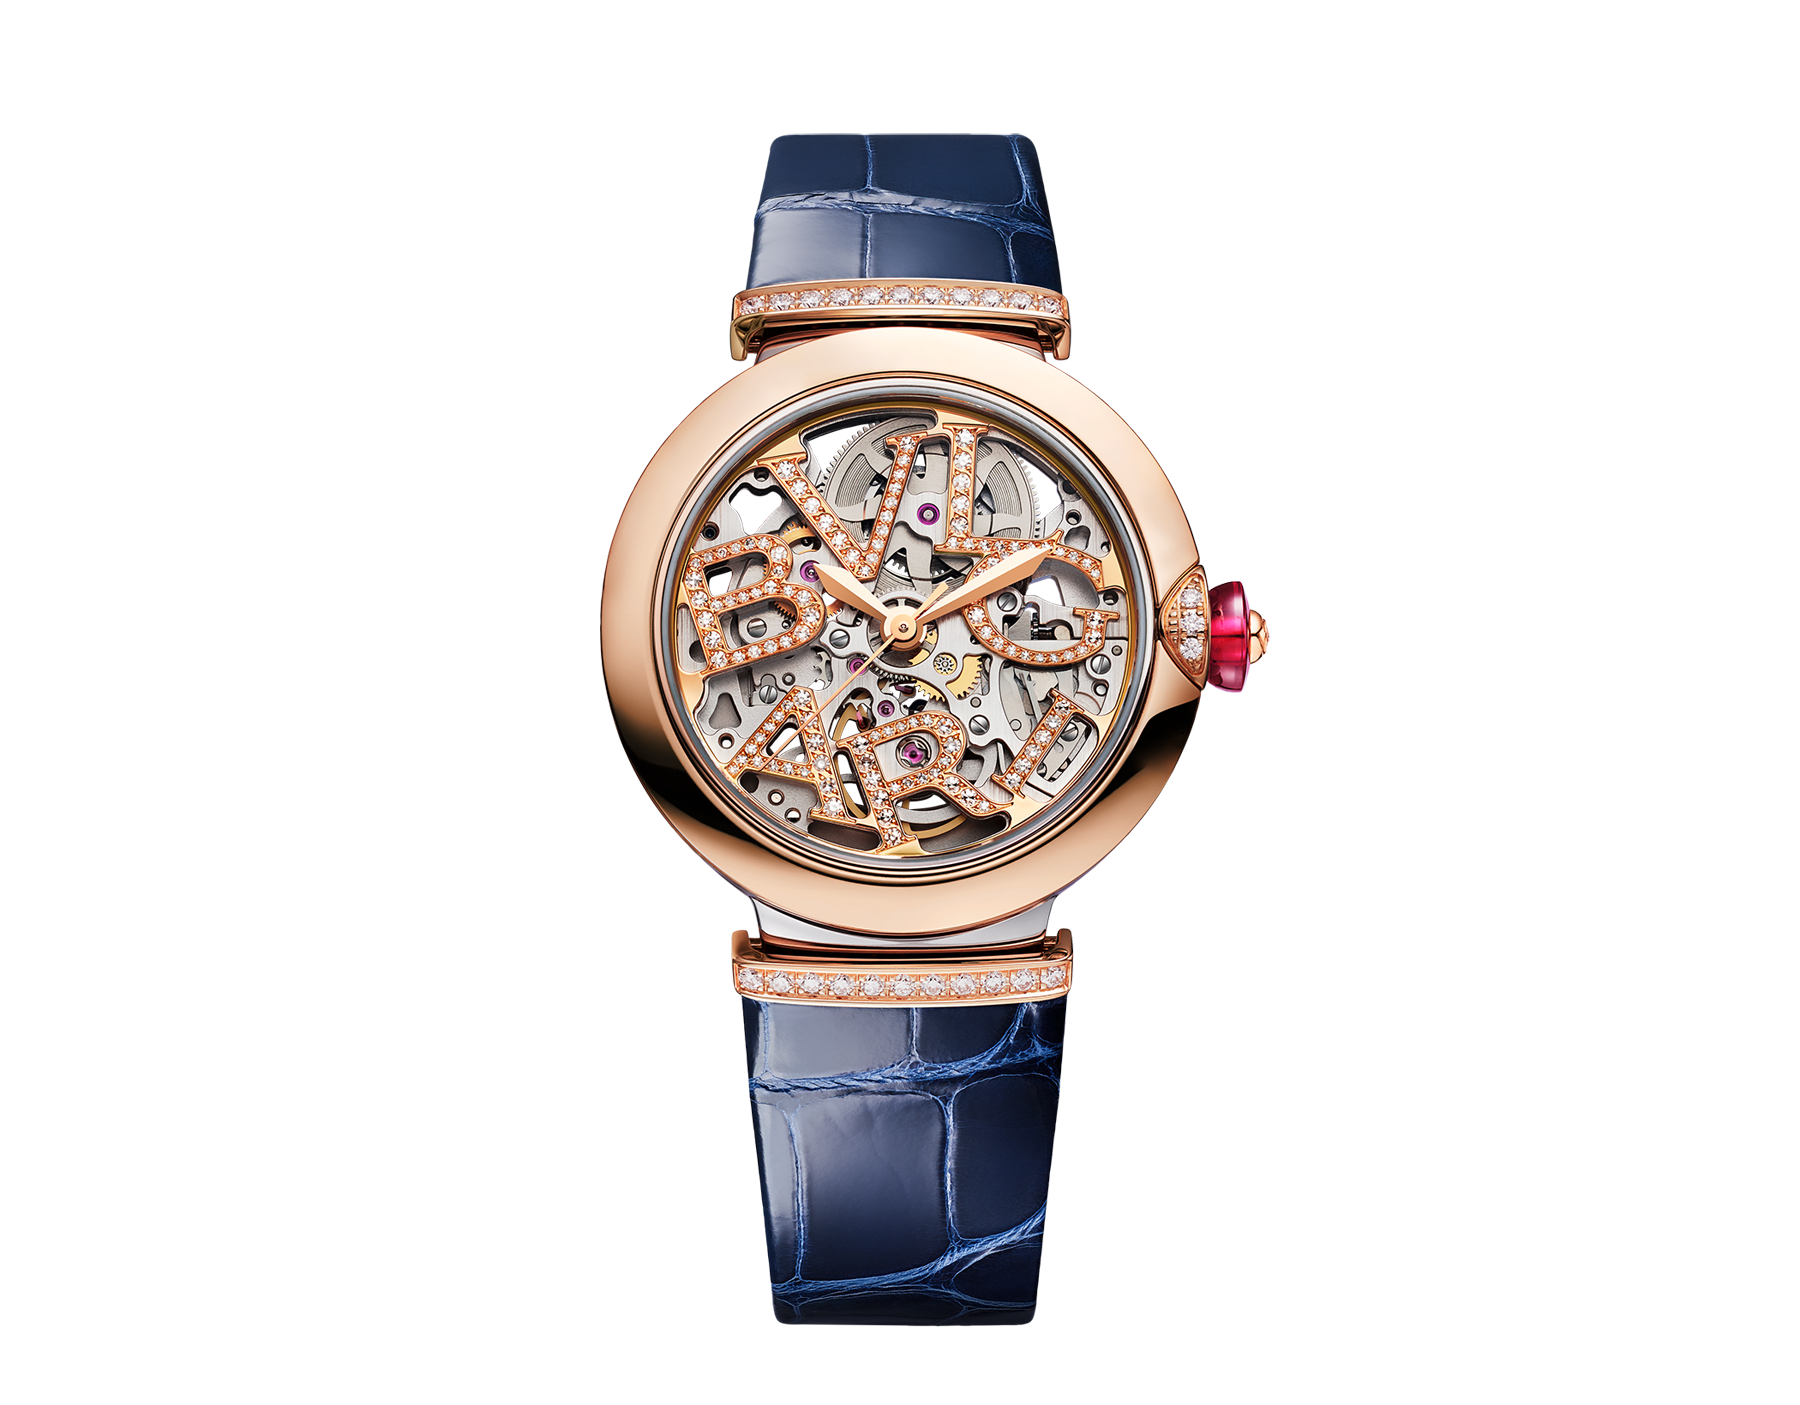 LVCEA Skeleton watch with mechanical manufacture movement, automatic winding and skeleton execution, stainless steel and 18 kt rose gold case, 18 kt rose gold openwork BVLGARI logo dial set with brilliant-cut diamonds and blue alligator bracelet with 18 kt rose gold links set with diamonds 103502 image 1